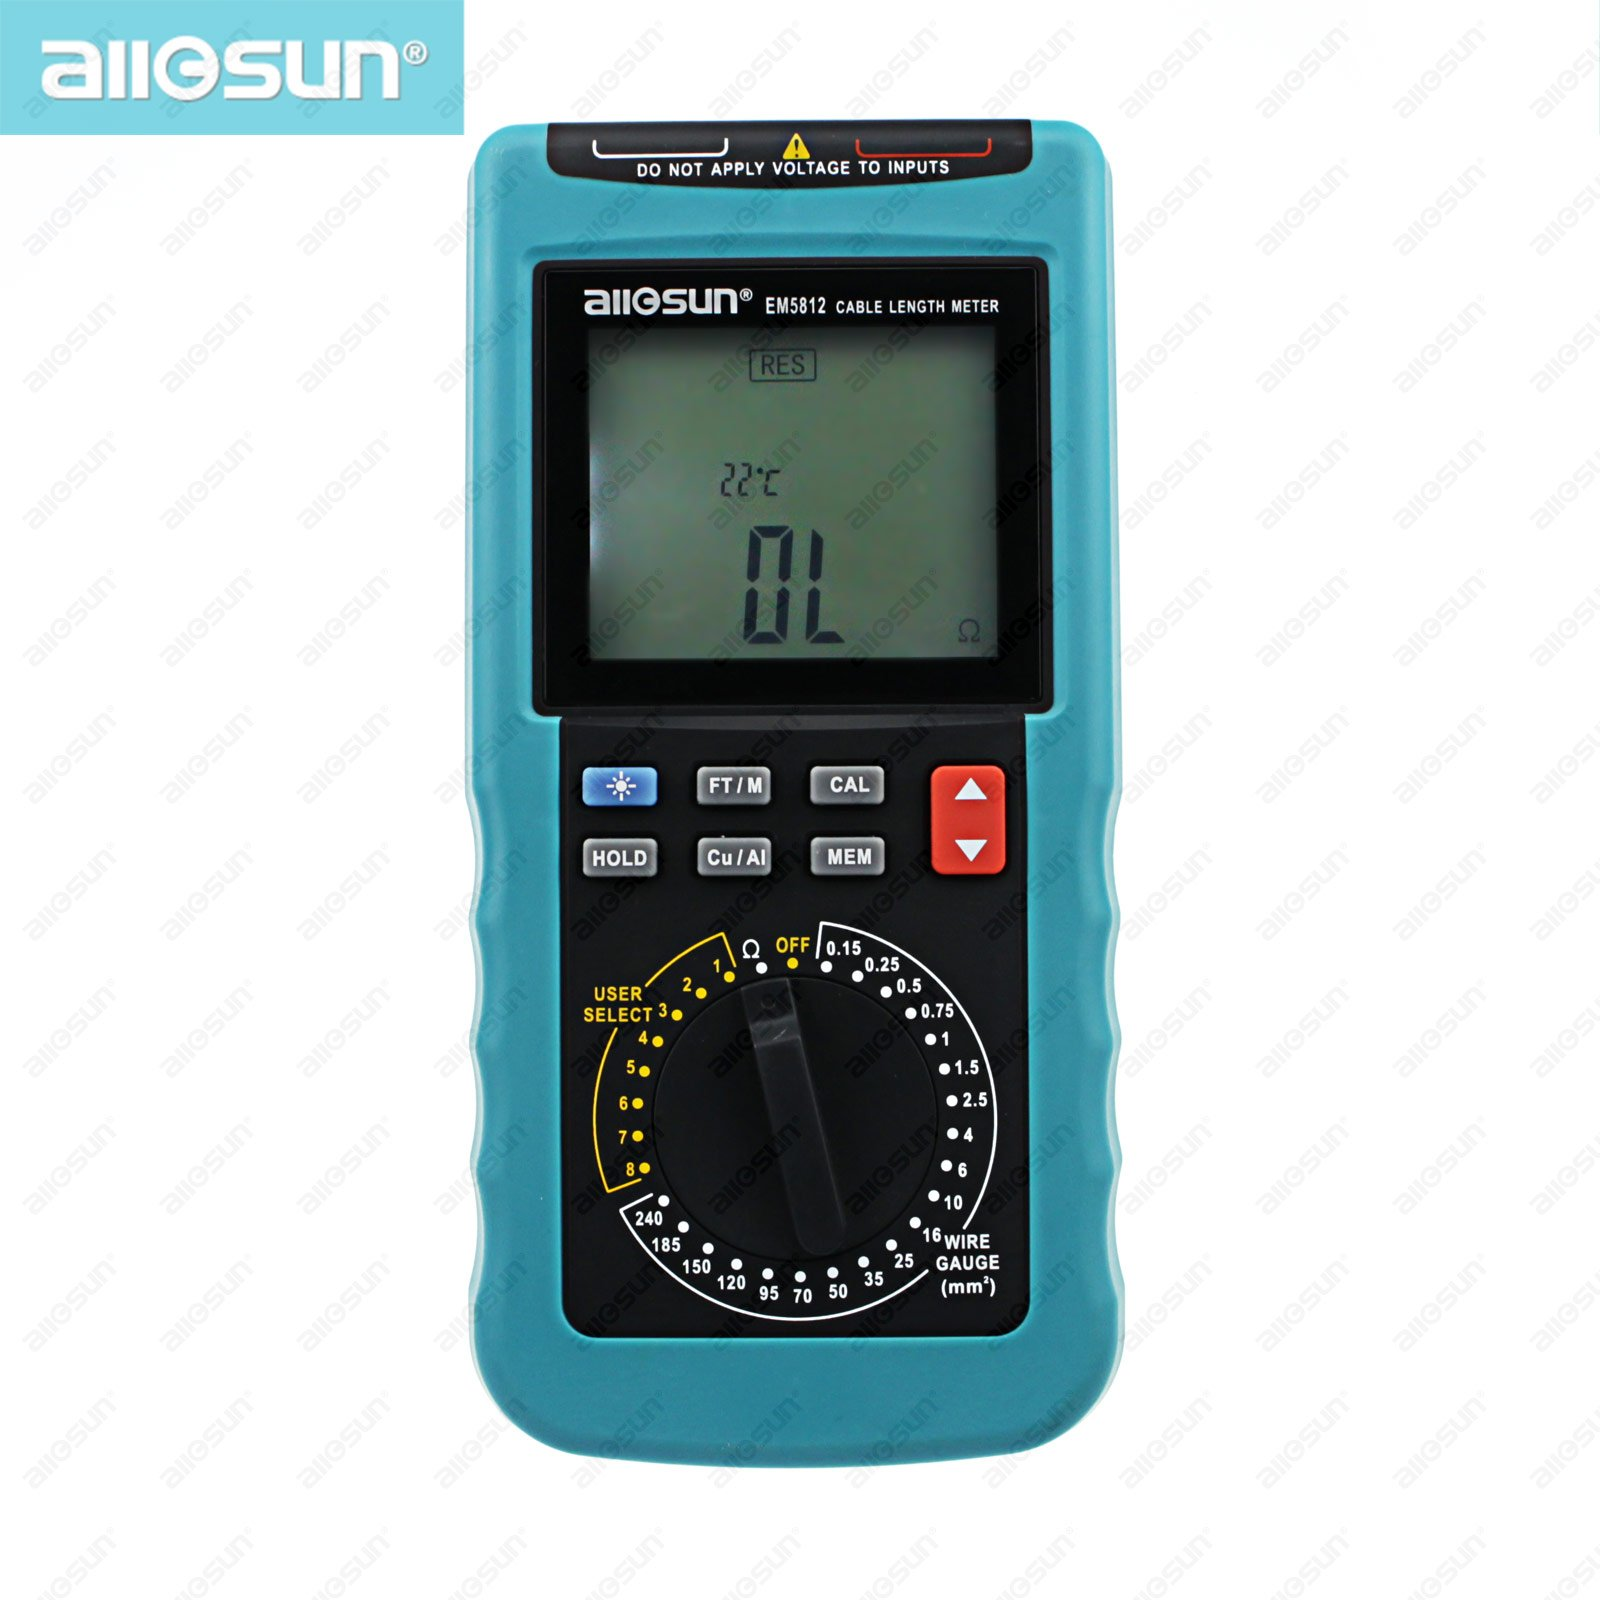 Modern digital cable length meter PC Data Network LCD Digital display automatic temperature compensation all-sun EM5812 eap 100xt direct factory digital passive infrared detector automatic temperature compensation detecting distance selectable